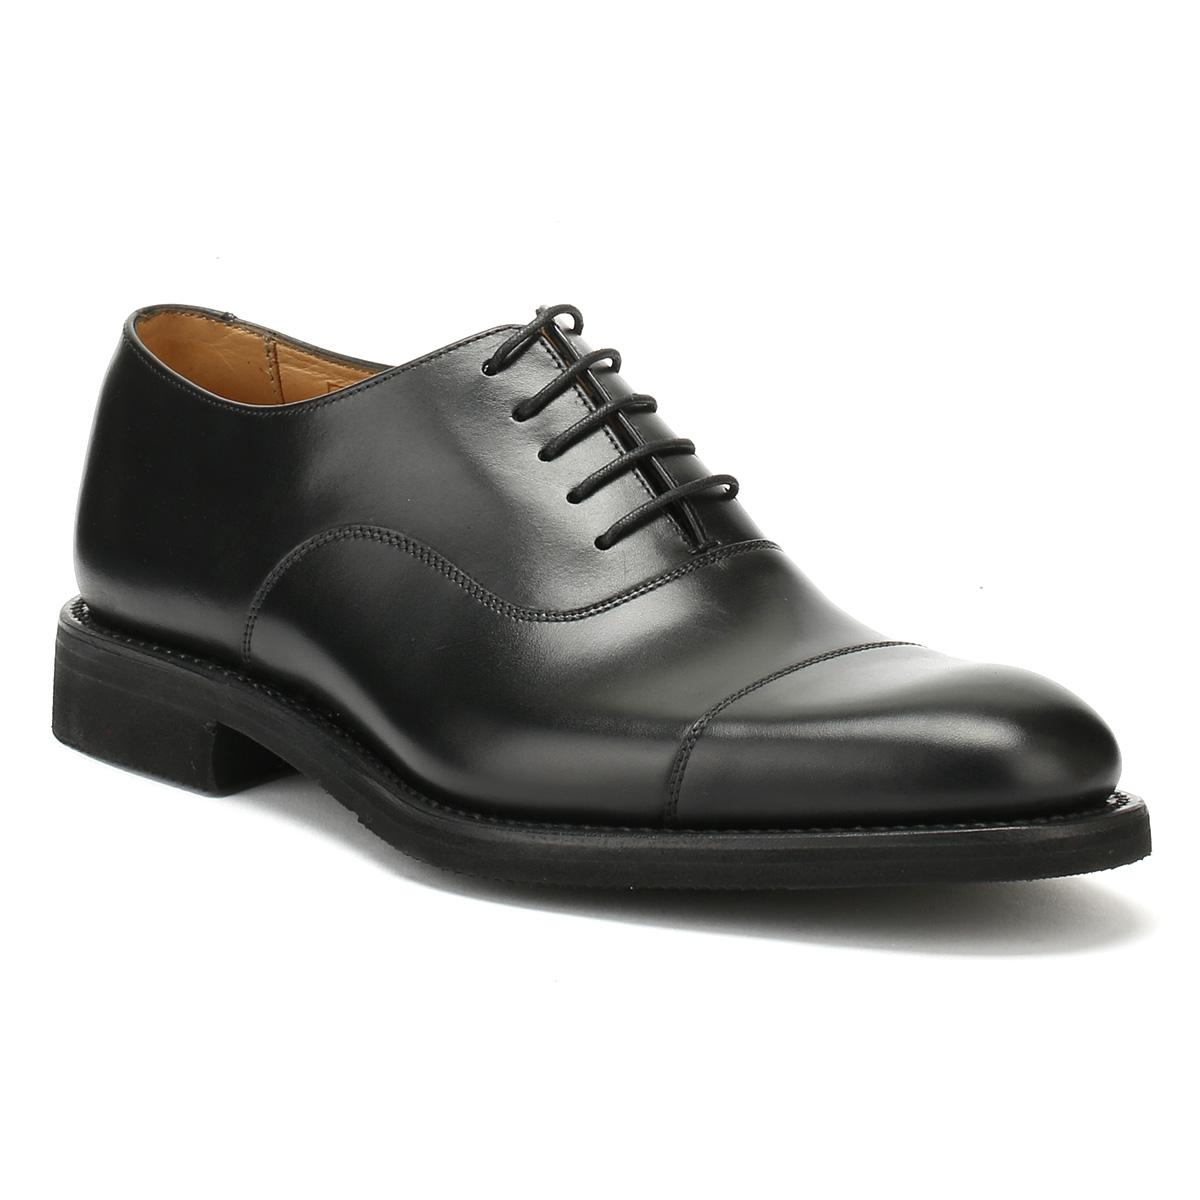 Black leather 'Orion' Oxford shoes in China cheap online stockist online cheap sale good selling CxGsfB